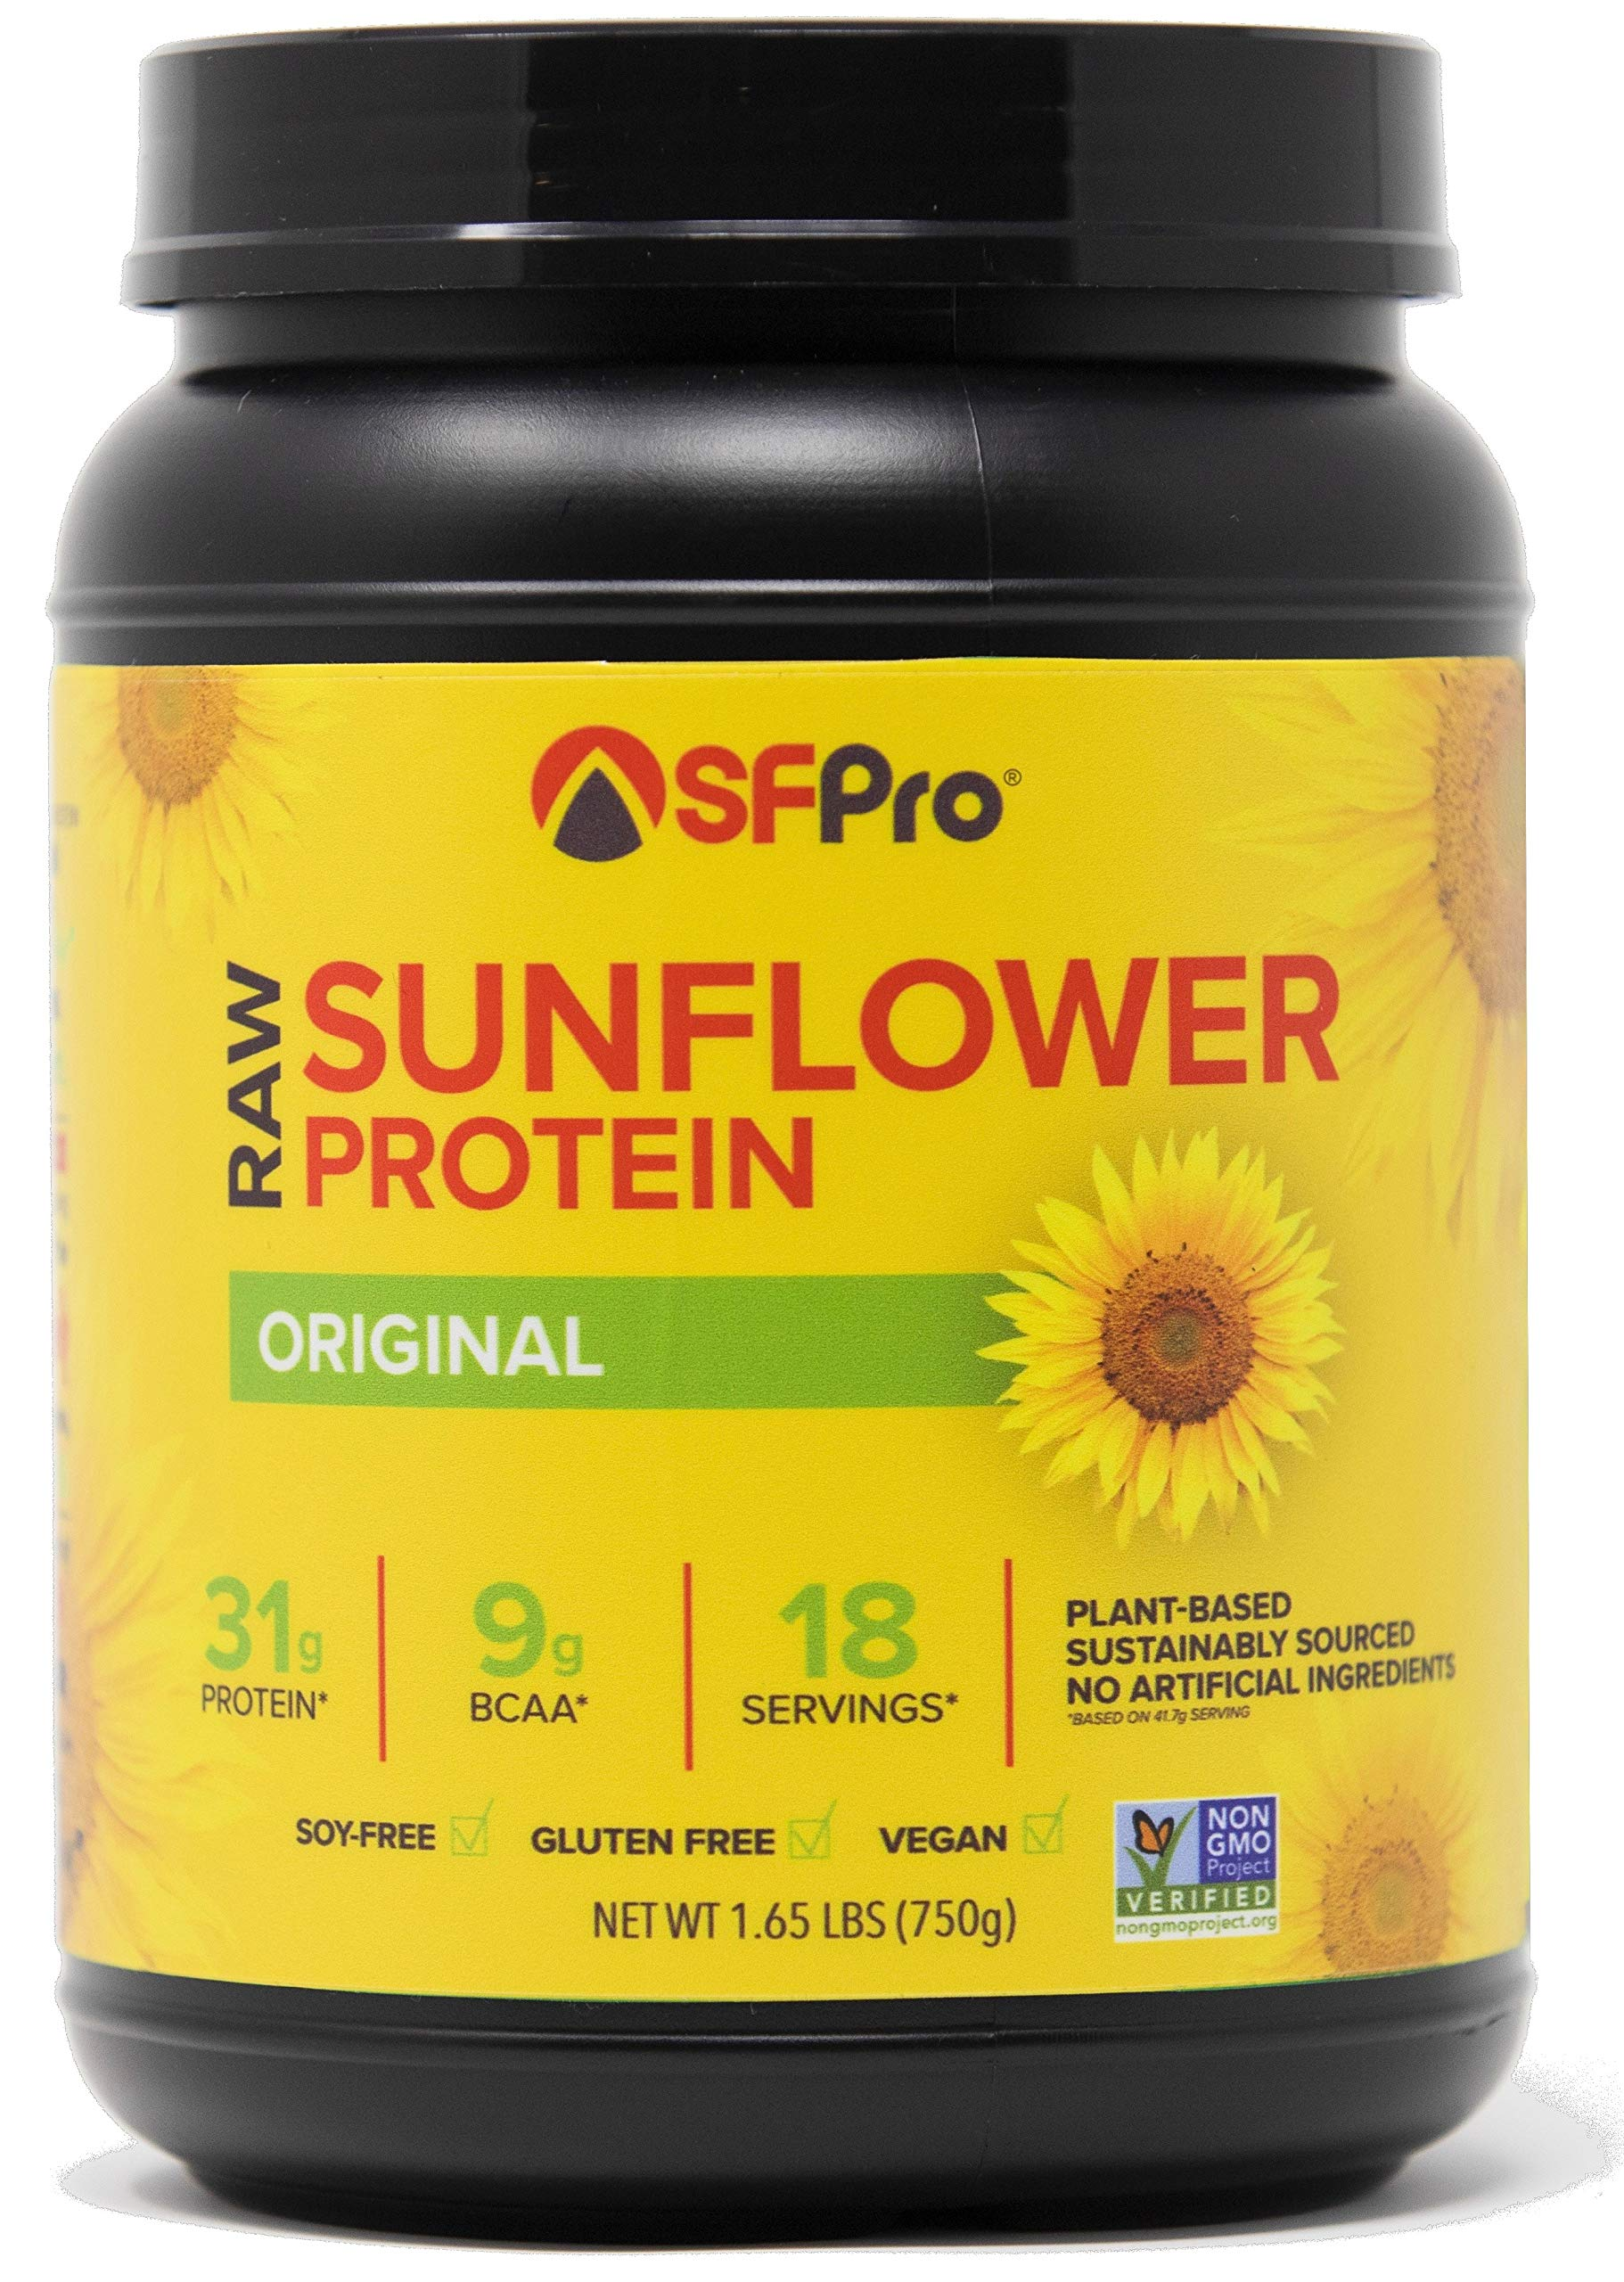 Plant Based Vegan Protein Powder by SFPro (Original) | Premium Sunflower Protein, Single Source | High BCAAs, Balanced Amino Acids, All Natural | 1.65lbs